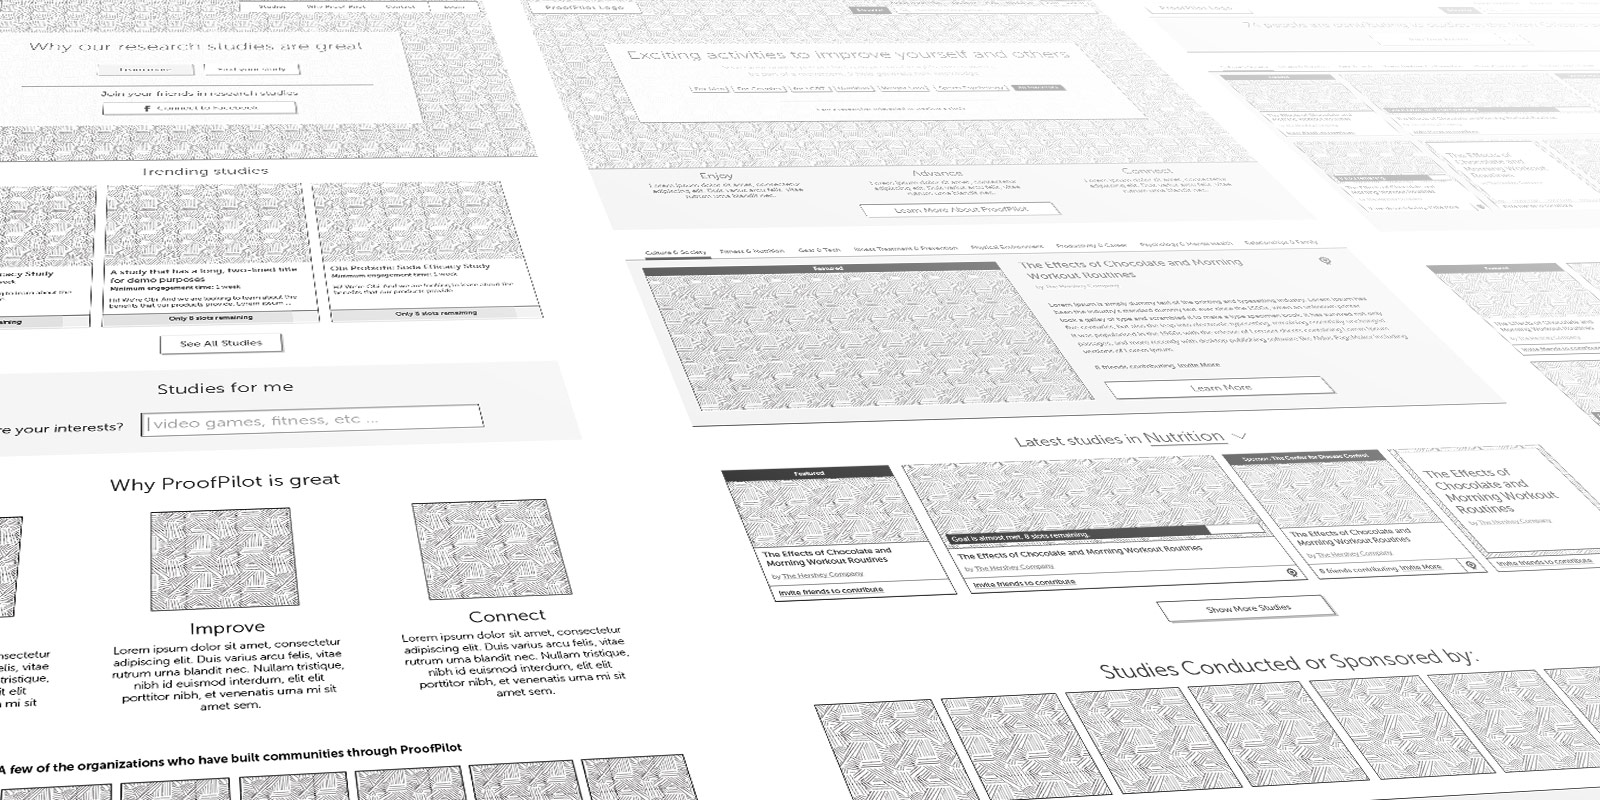 Wireframes created by Communify as technical outlines for ProofPilot's development team